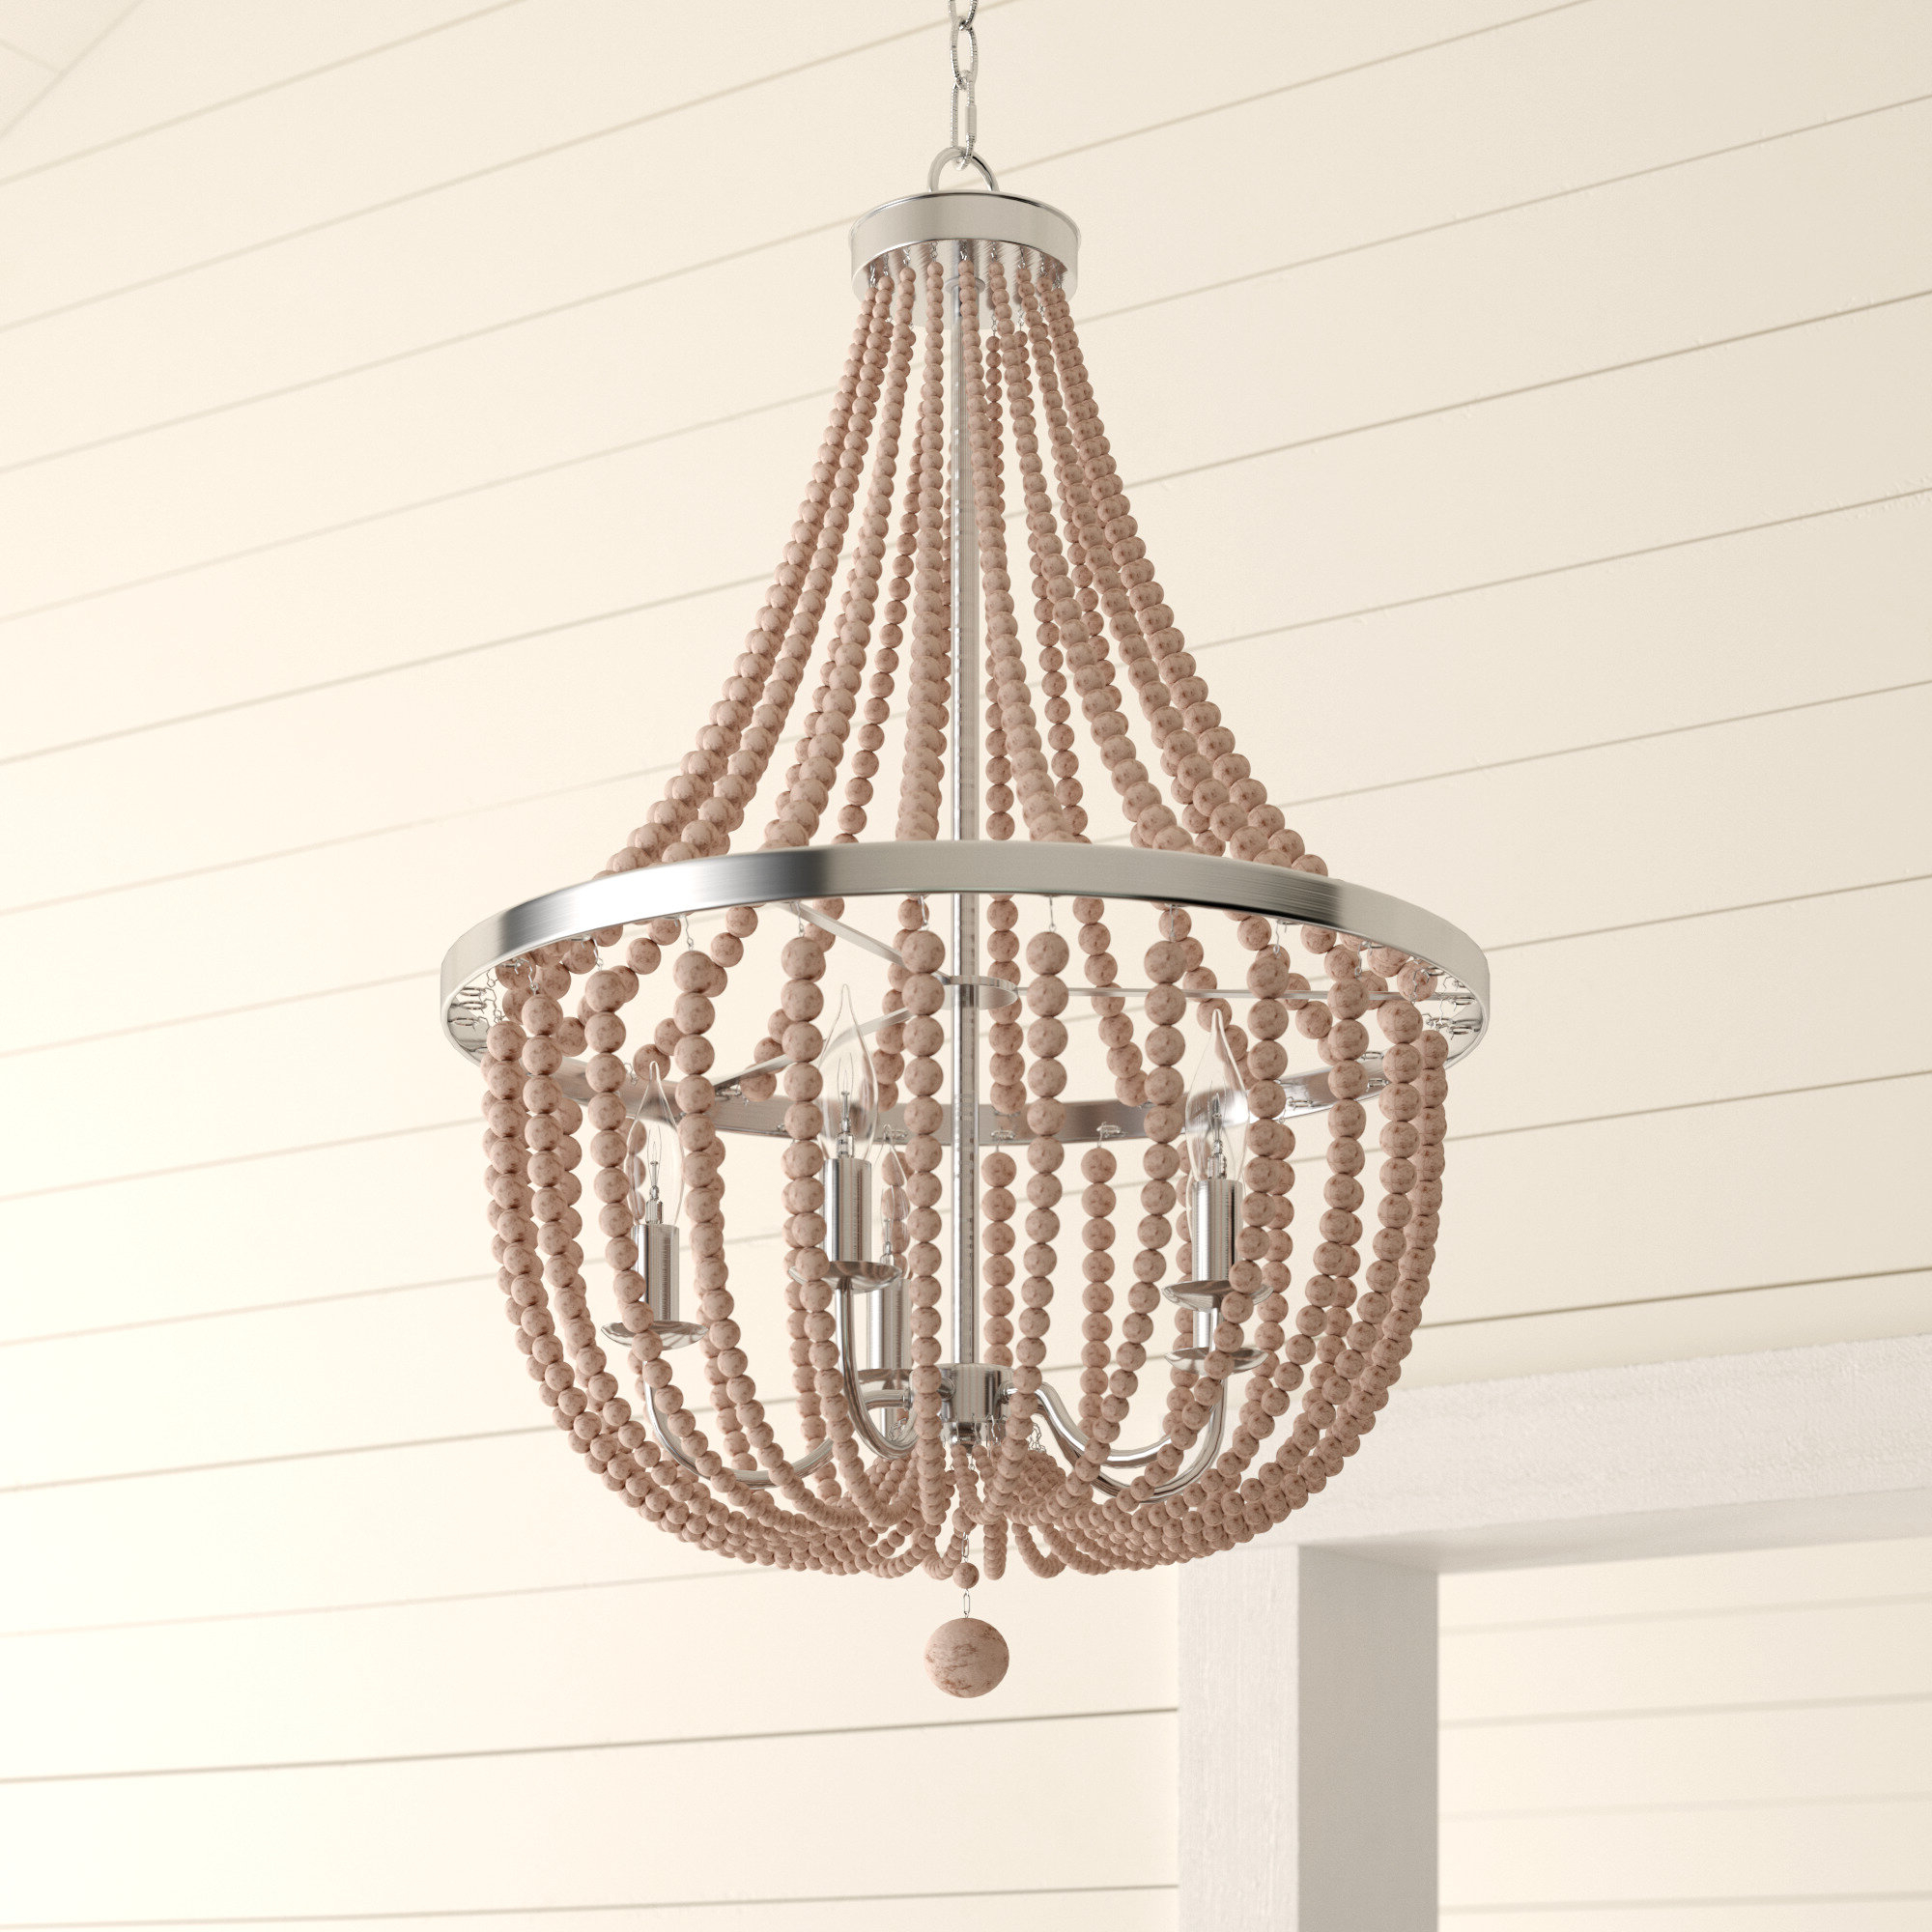 Ladonna 5 Light Novelty Chandeliers Regarding Well Liked Bay Isle Home Tilden Wood Bead 5 Light Empire Chandelier (View 6 of 20)